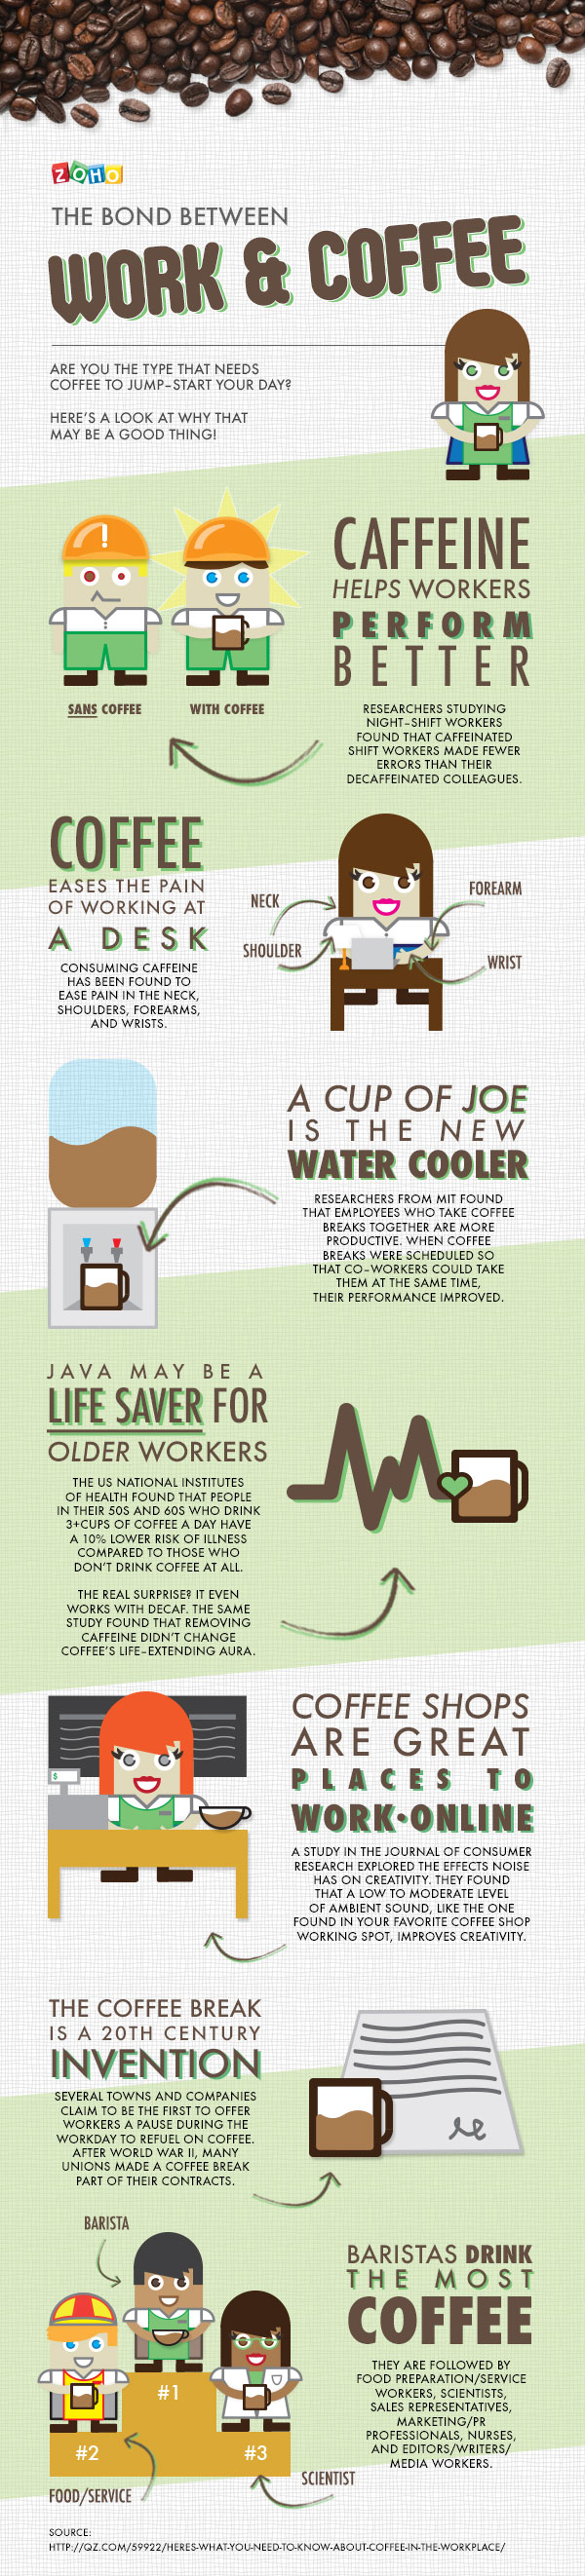 The Benefits Of Drinking Coffee While Working Each Day [Infographic]